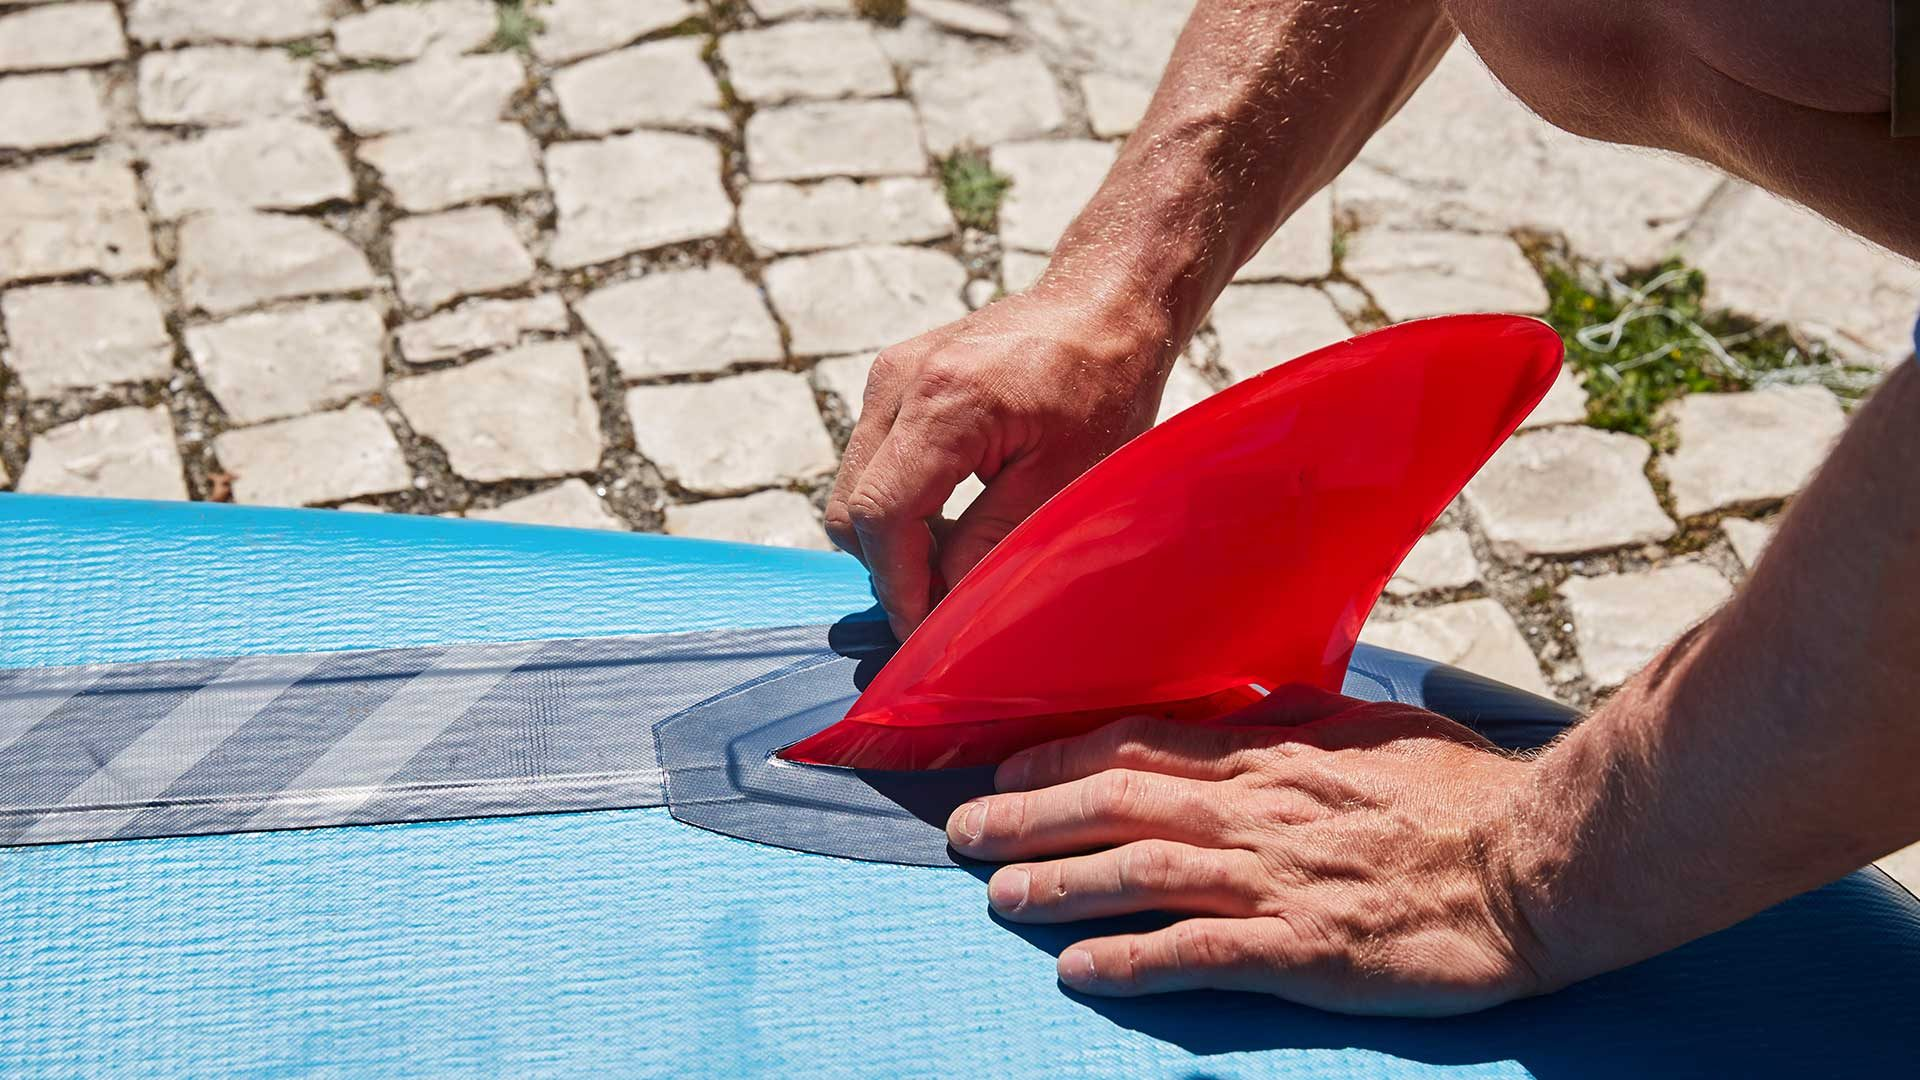 redpaddleco-96-compact-inflatable-paddle-board-inflatable-paddle-board-desktop-gallery-fins